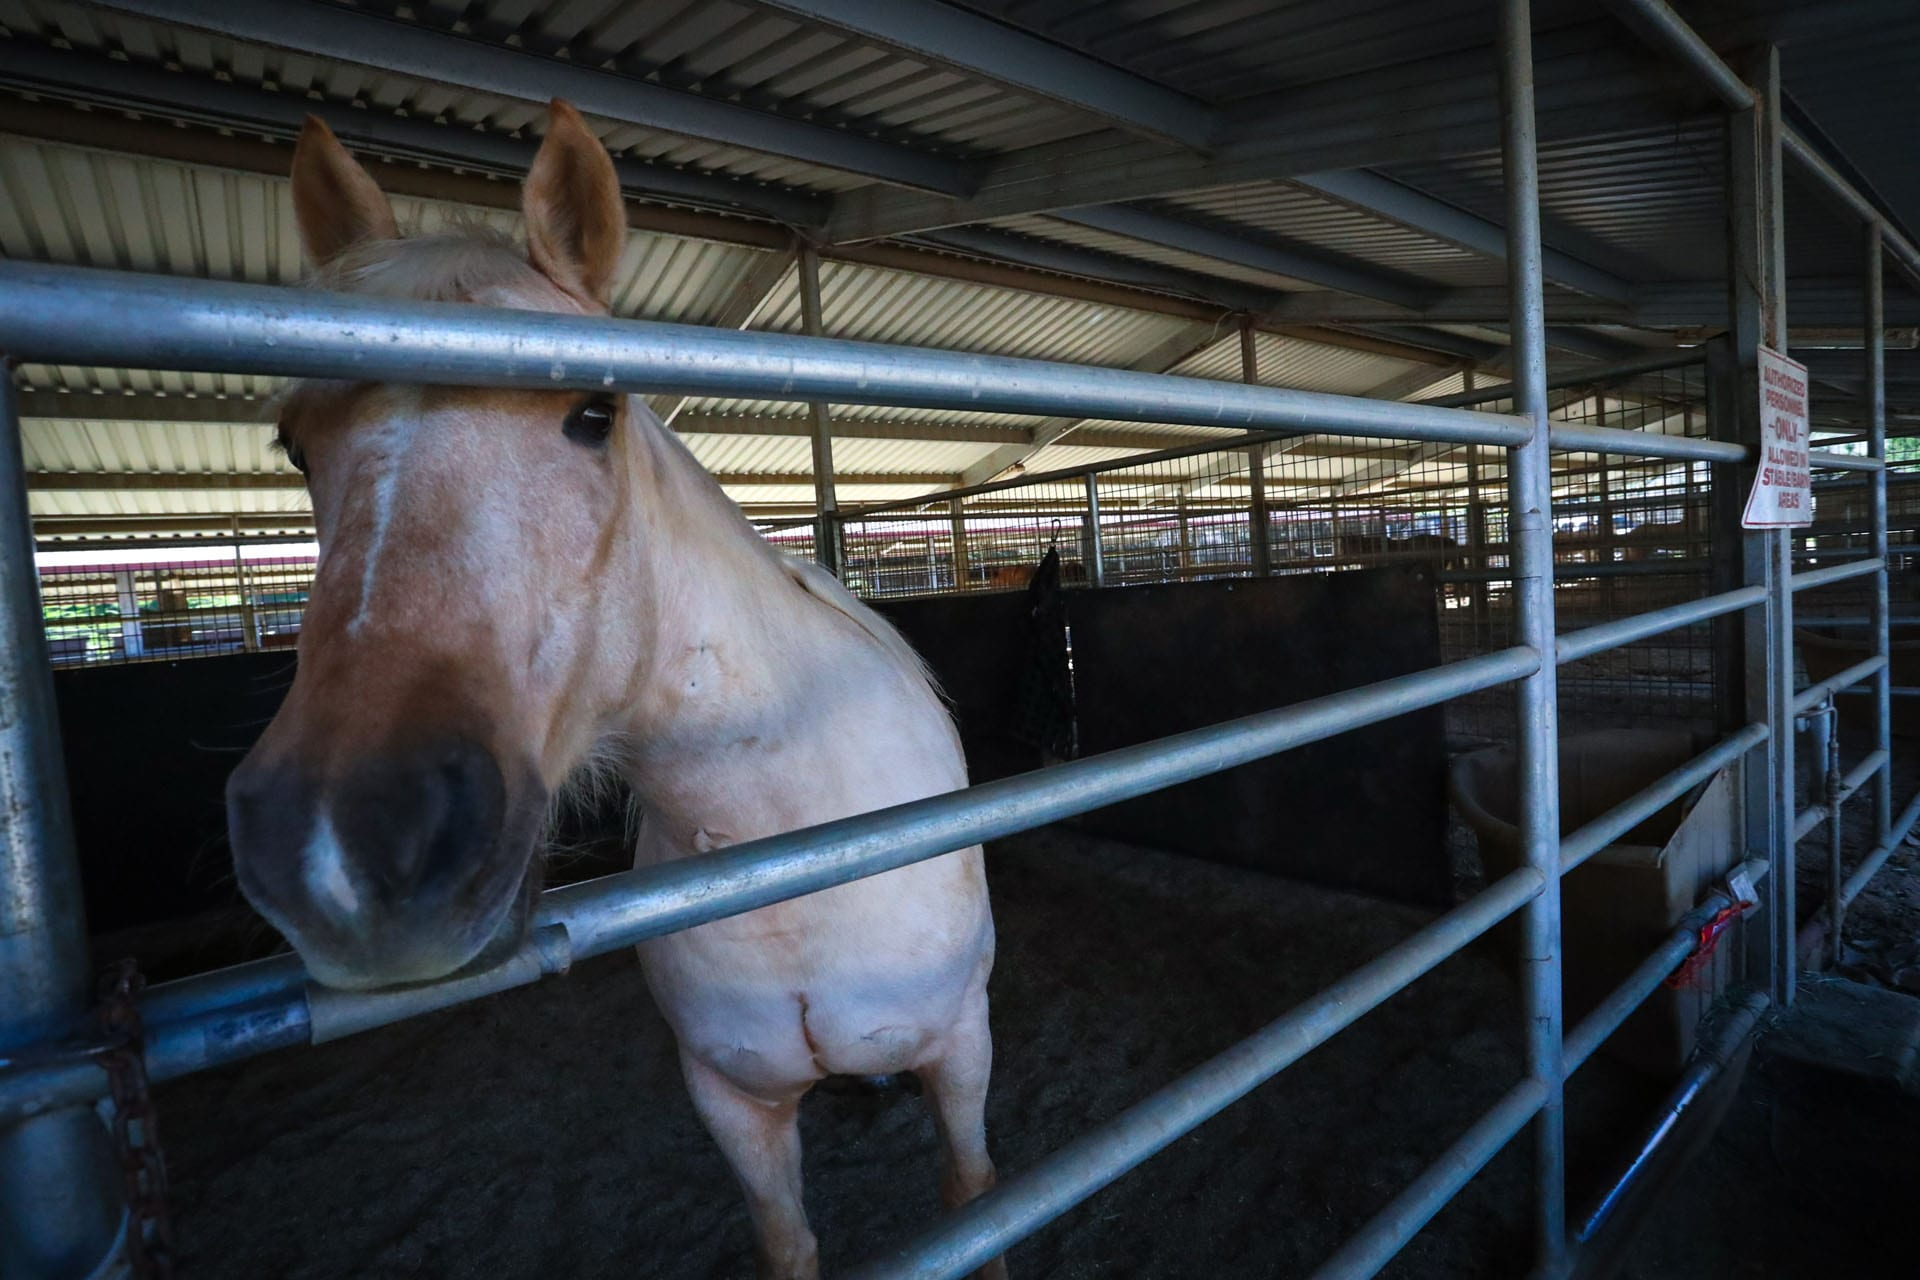 White horse looking through the rungs of it's stall